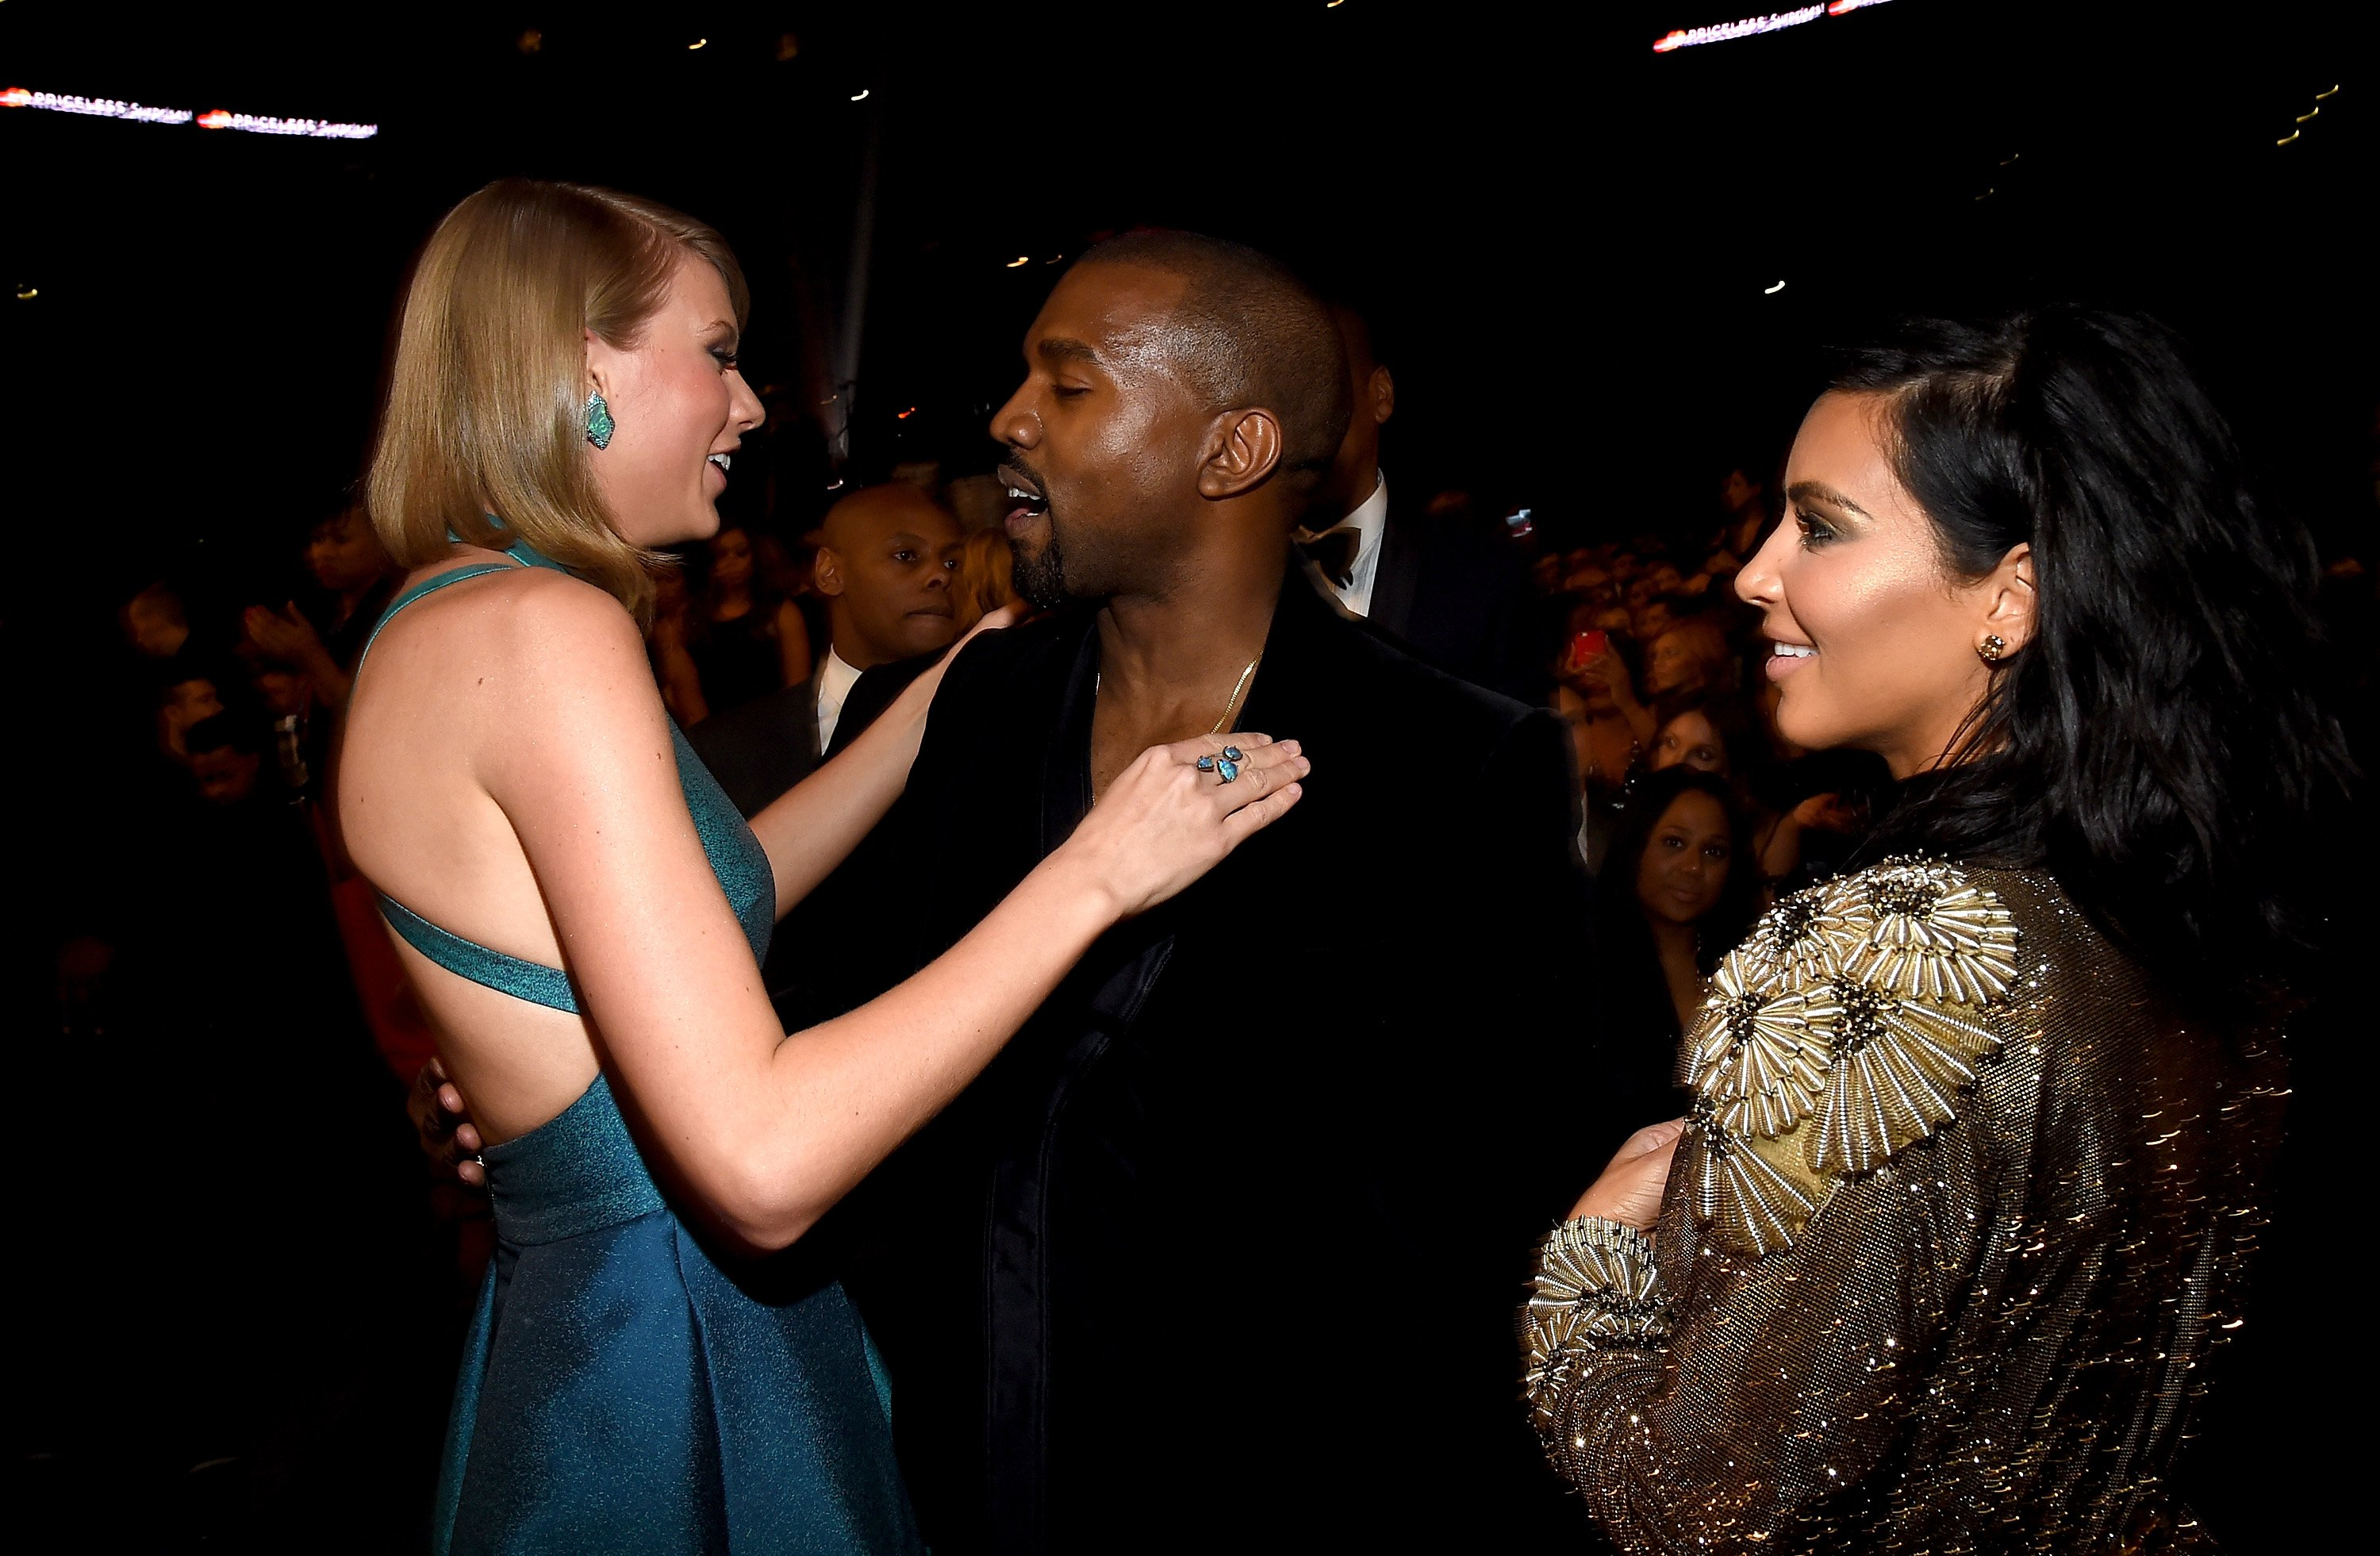 Everyone Thinks Kanye Wore This Hugely Inappropriate Taylor Swift T Shirt GettyImages 463036782 4